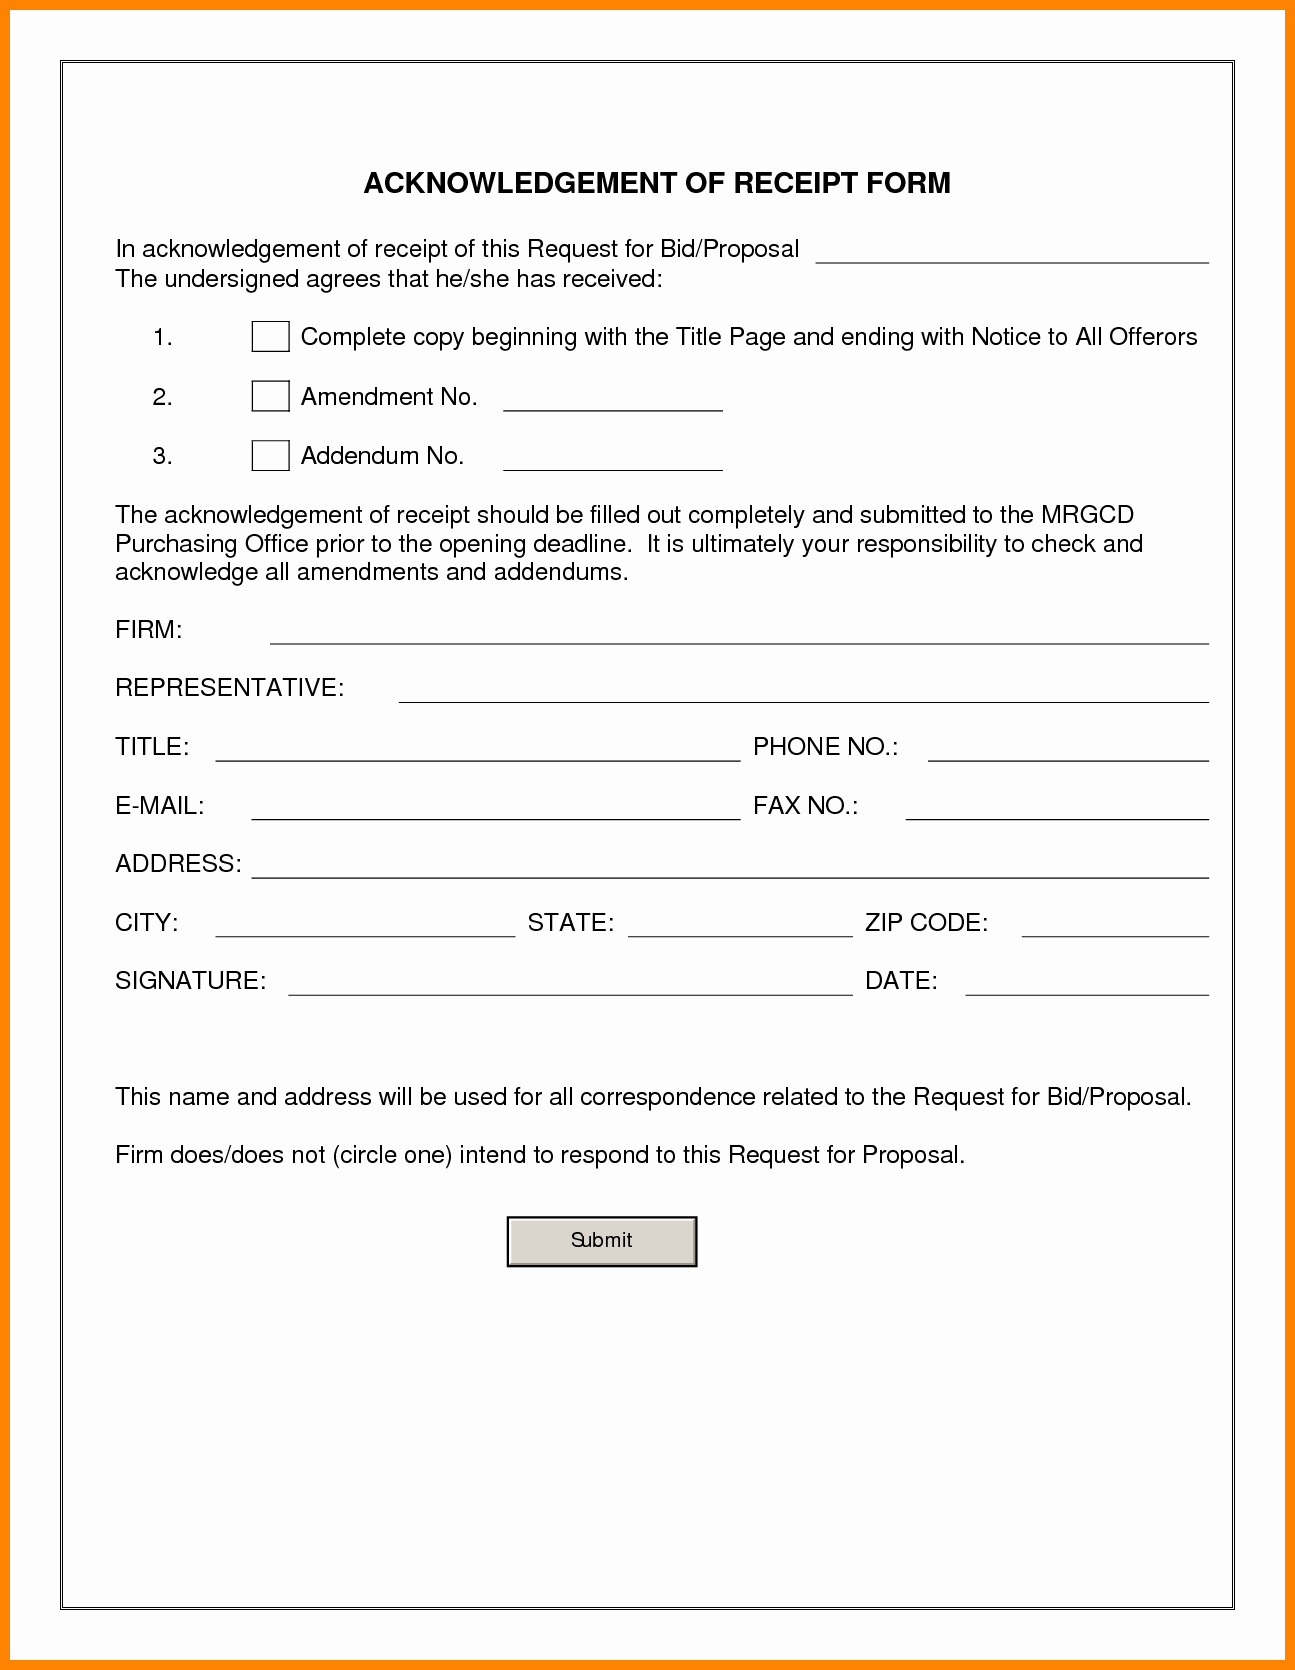 Acknowledgement Of Receipt form Template Fresh Outstanding Receipt Document S Simple Resume